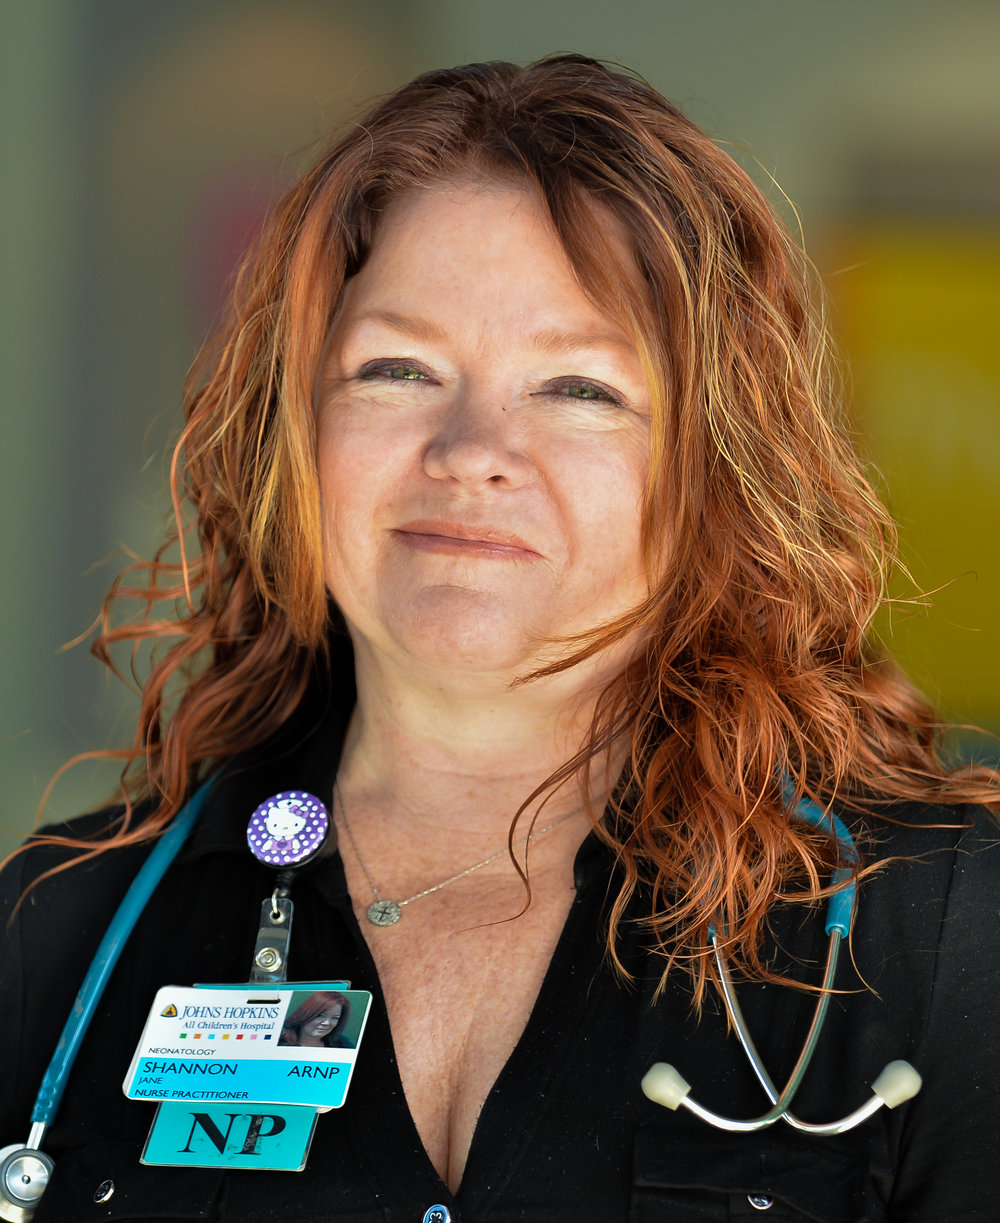 Jane Shannon is a nurse practitioner at the NAS follow-up clinic in Sarasota. [Herald-Tribune staff photo /Dan Wagner]